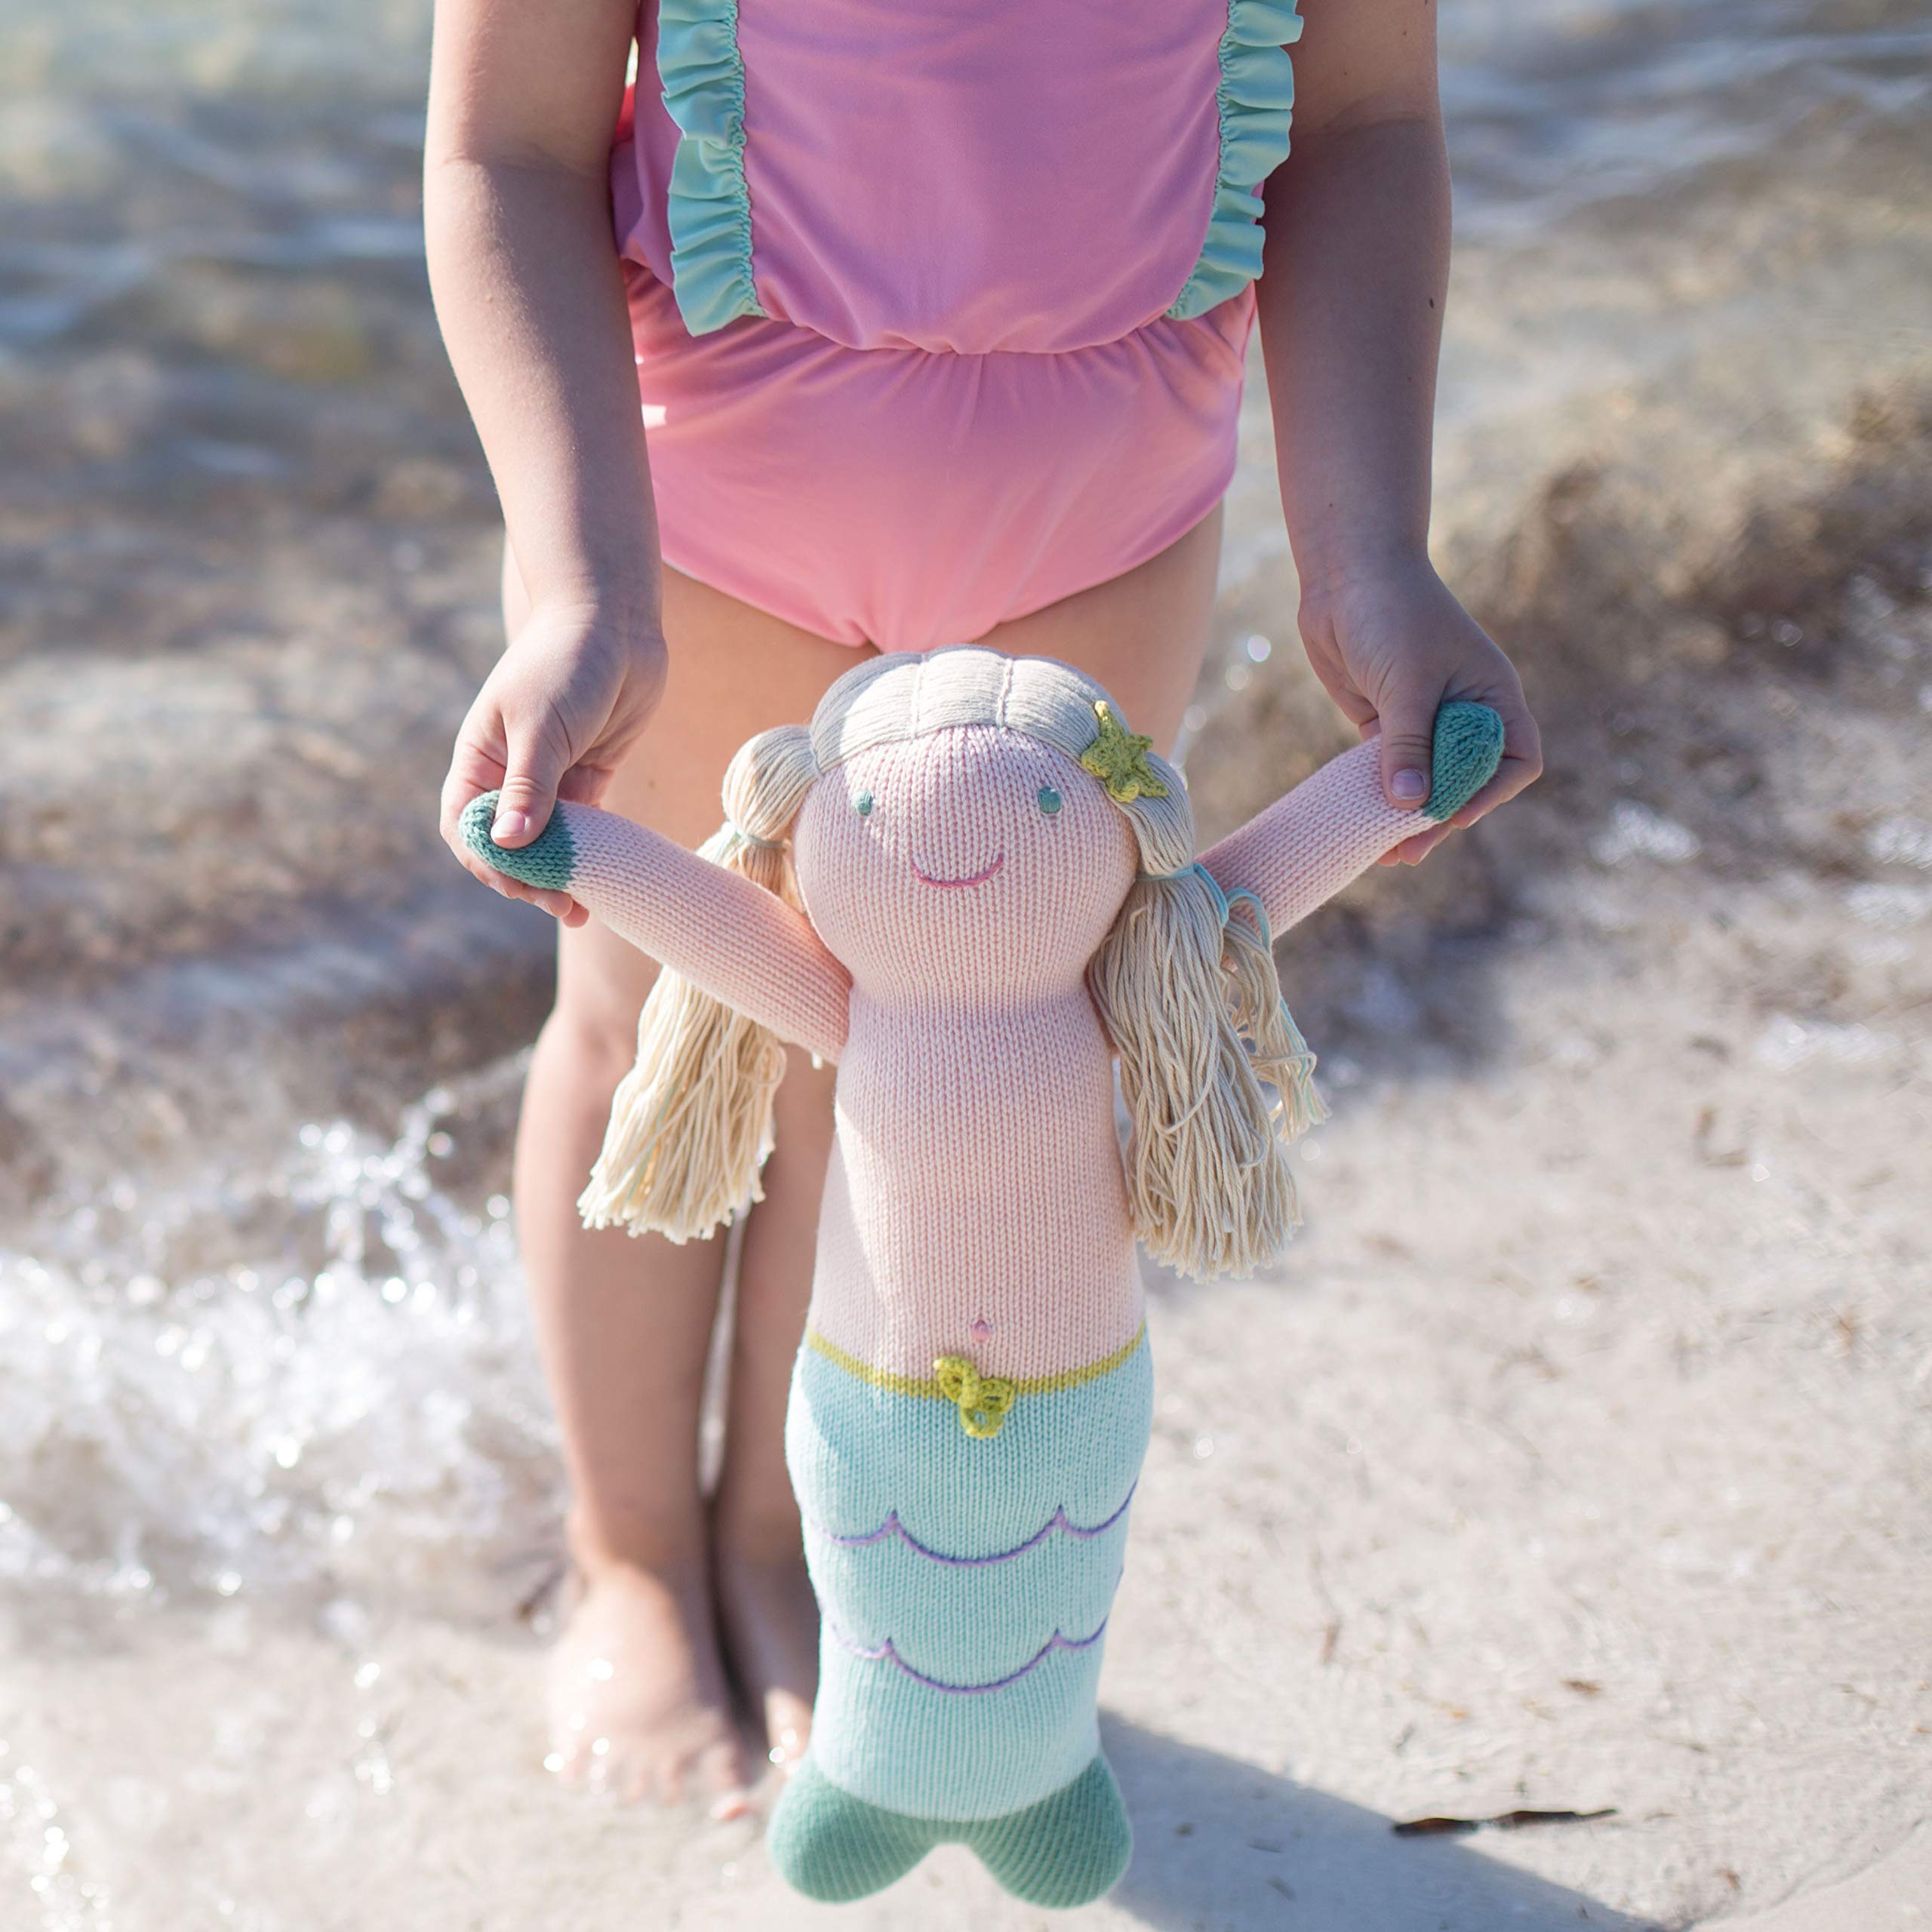 Blabla Harmony The Mermaid Mini Plush Doll - Knit Stuffed Animal for Kids. Cute, Cuddly & Soft Cotton Toy. Perfect, Forever Cherished. Eco-Friendly. Certified Safe & Non-Toxic. by Blabla